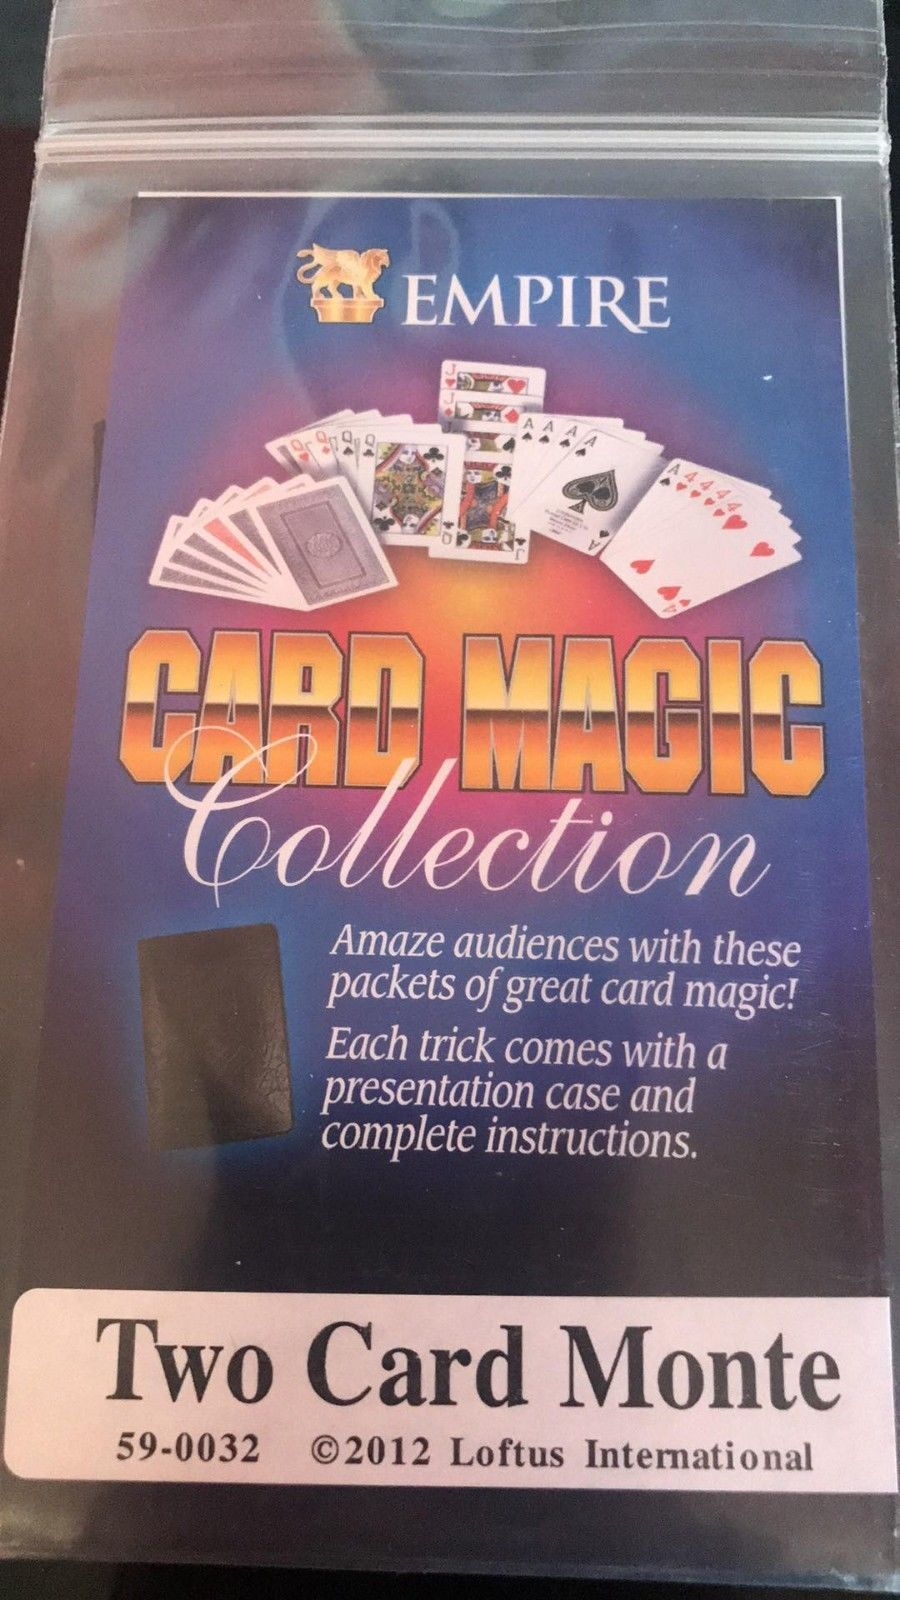 Empire Card Magic Collection - Two Card Monte